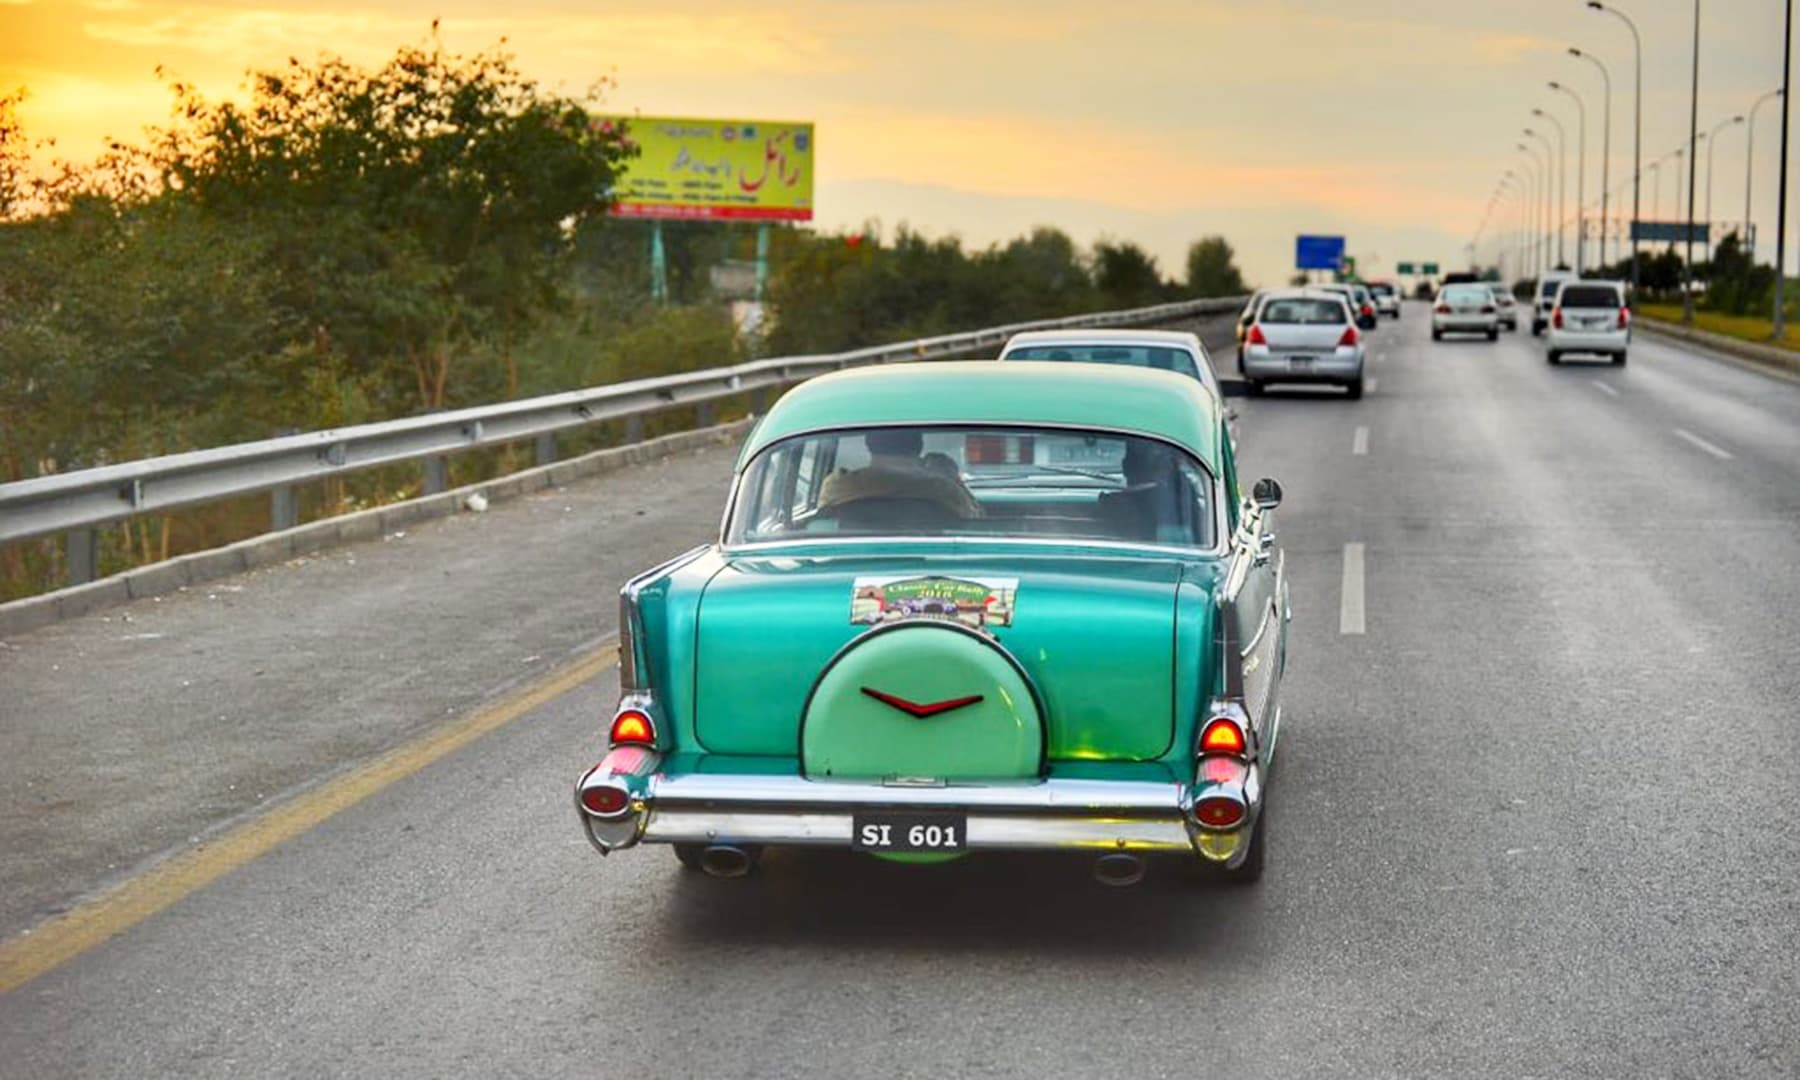 A setting sun reflected in the turquoise exterior of this classic car. —@PTIofficial